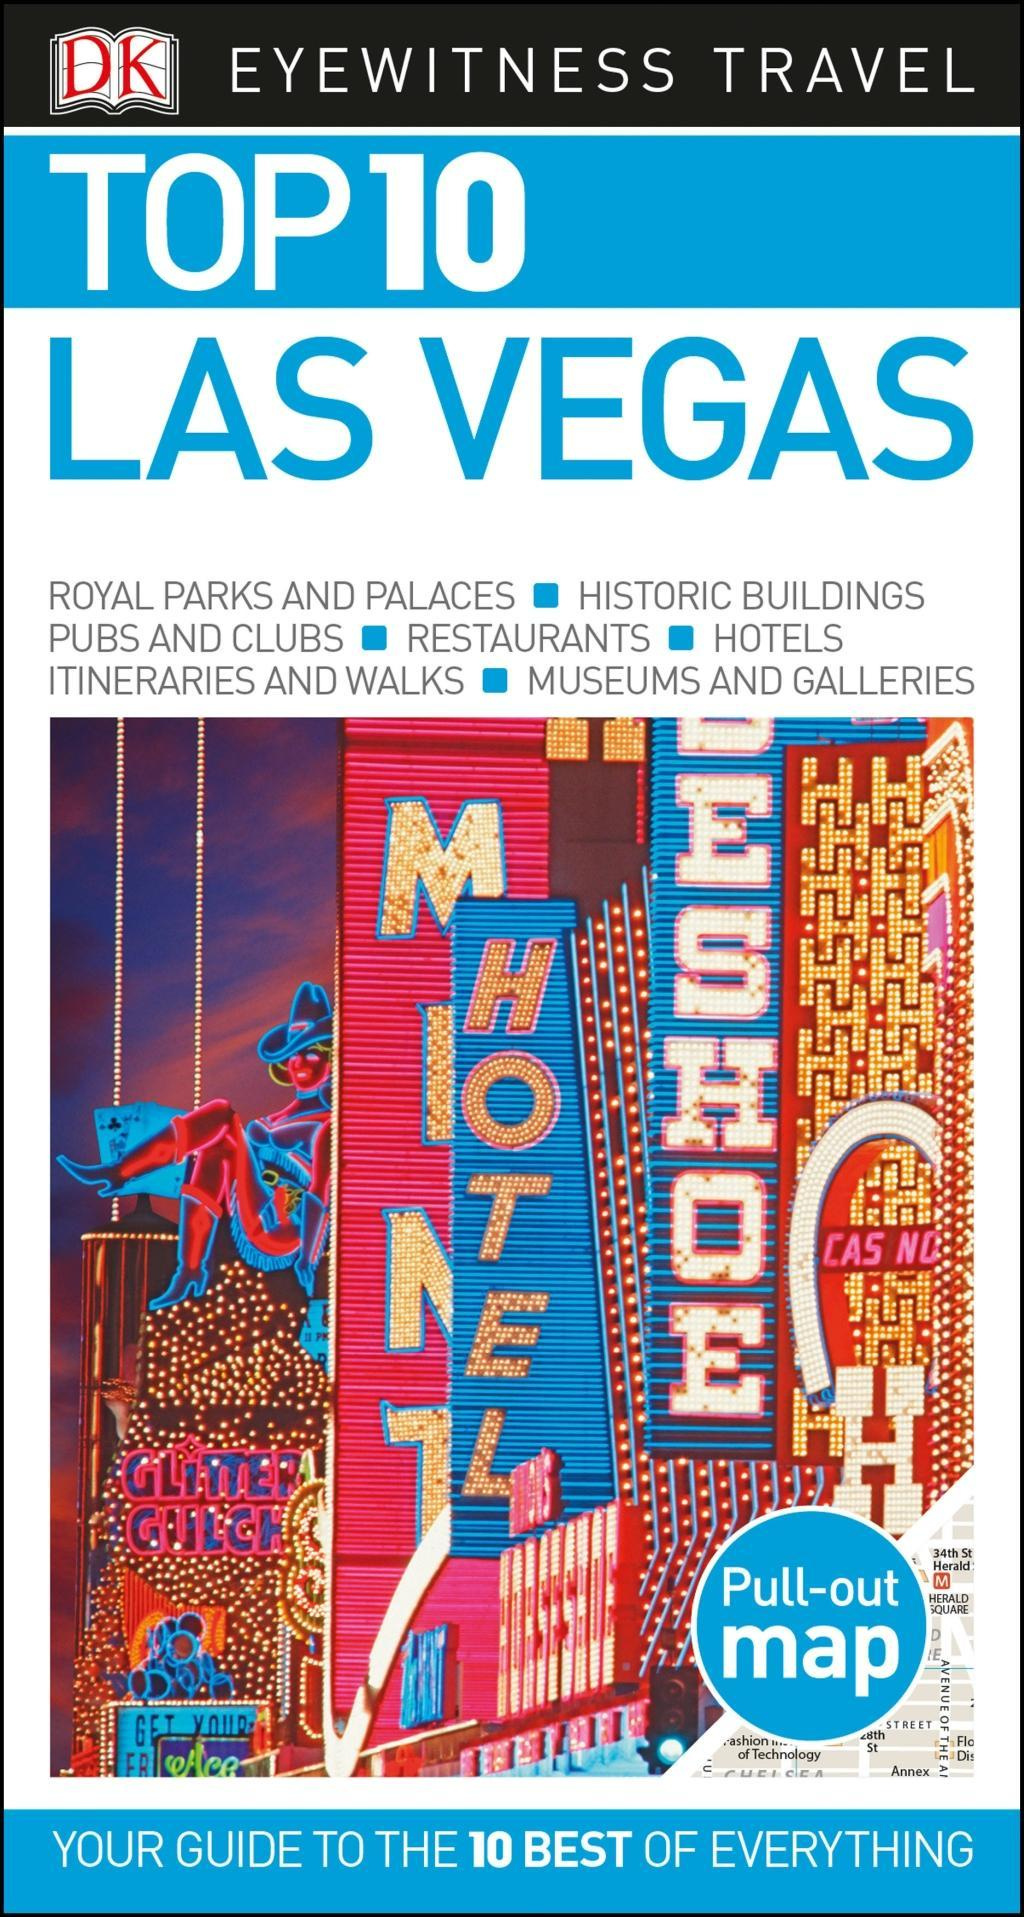 Top 10 Las Vegas (DK Eyewitness Top 10 Travel Guides)